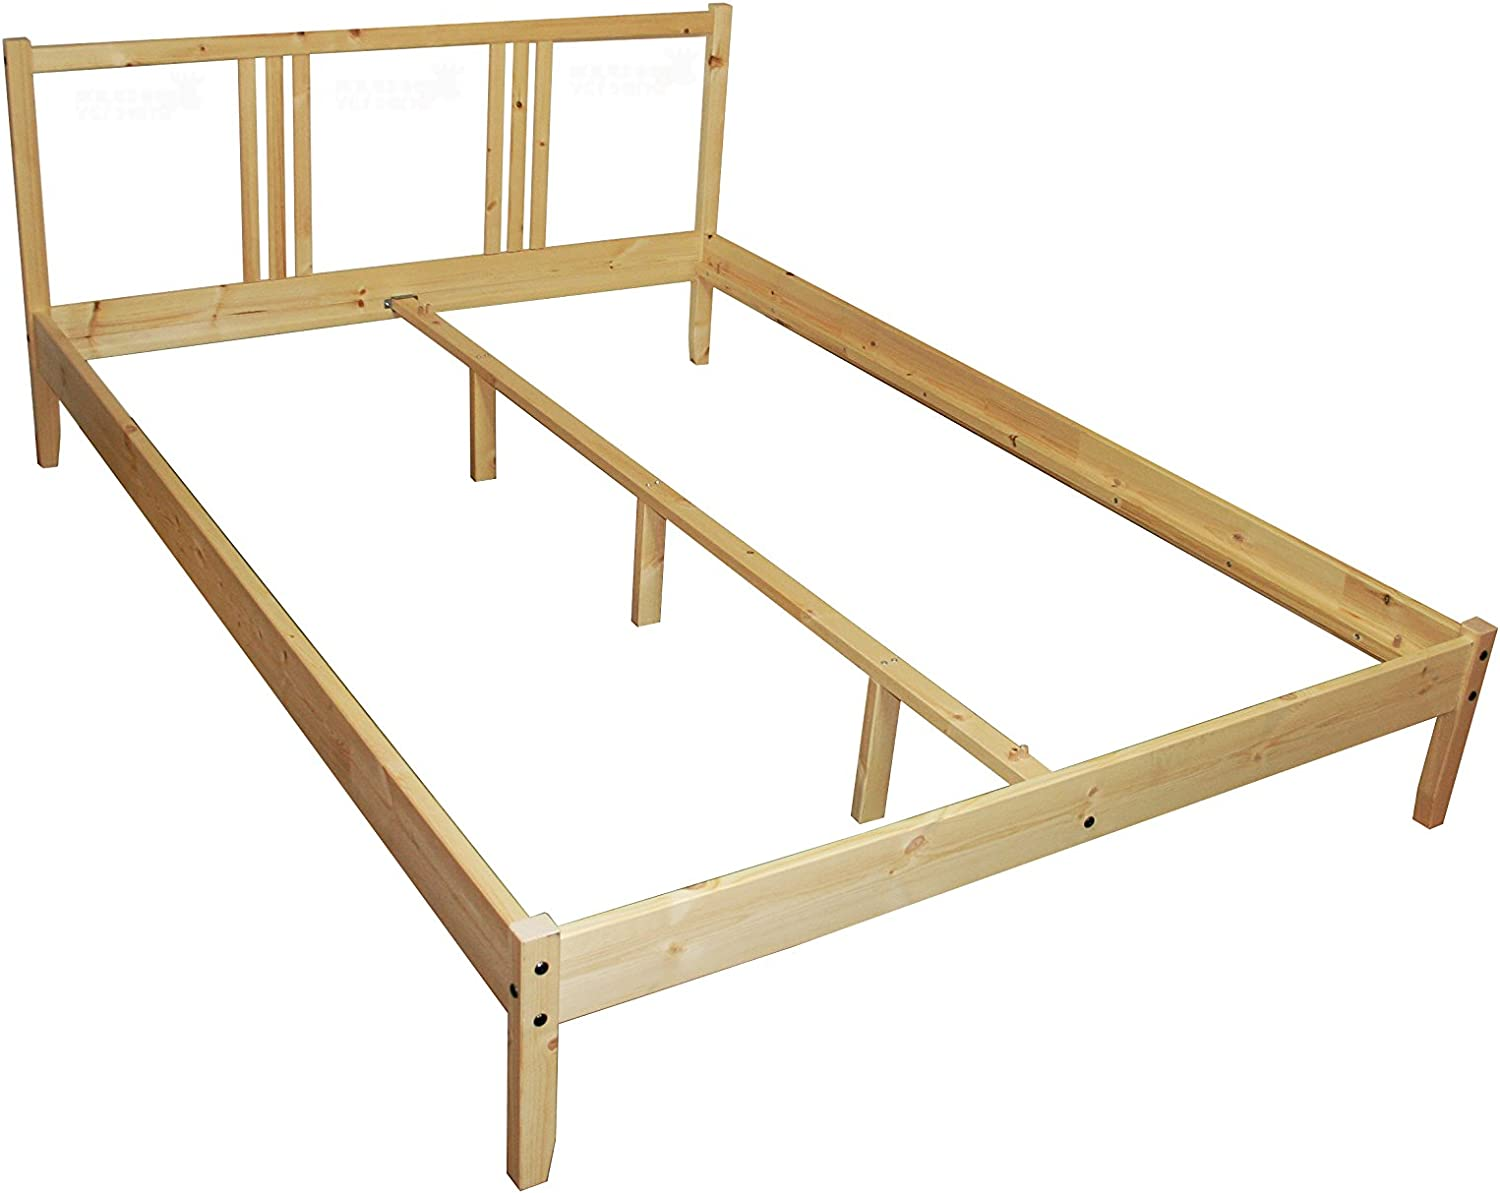 Ikea Fjellse Bed In 140 X 200 Cm Bed Frame Solid Untreated Pine Amazon Co Uk Kitchen Home